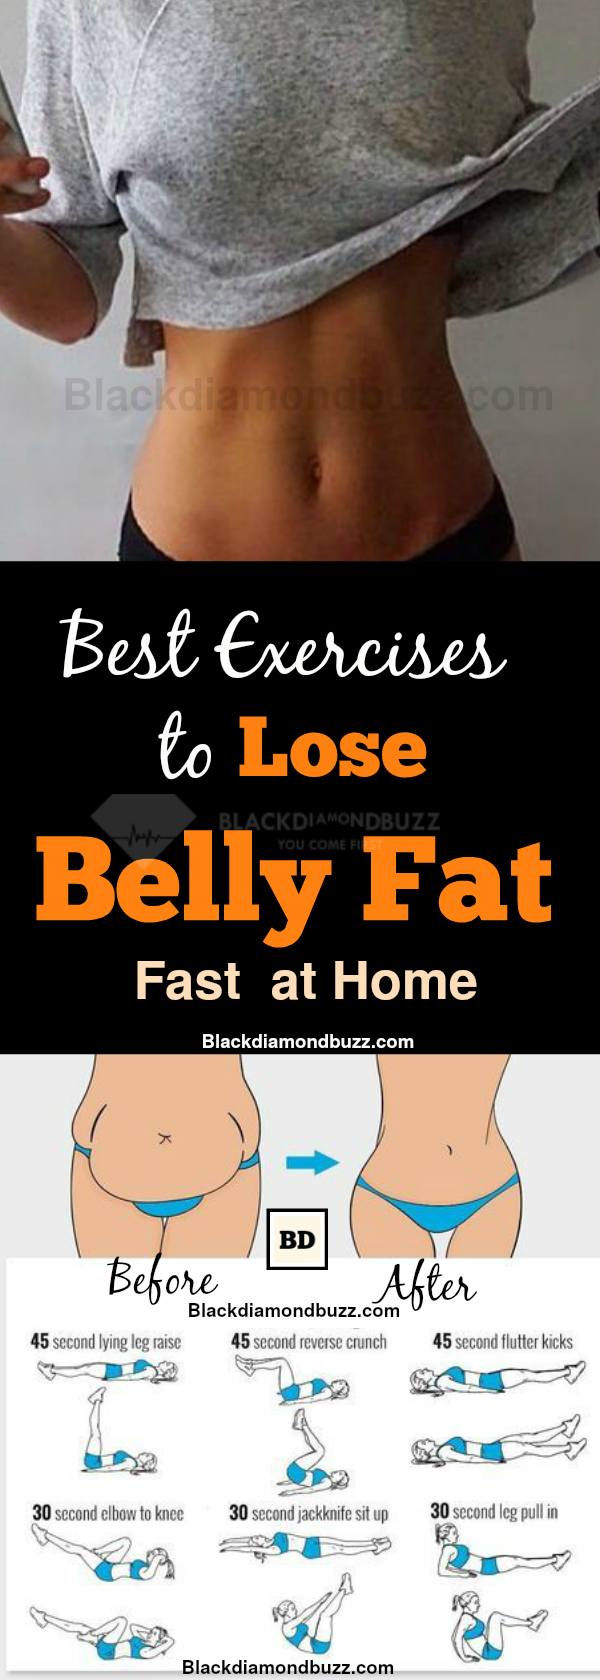 Exercises to Lose Belly Fat Fast- 10 Belly Fat Burning Exercises